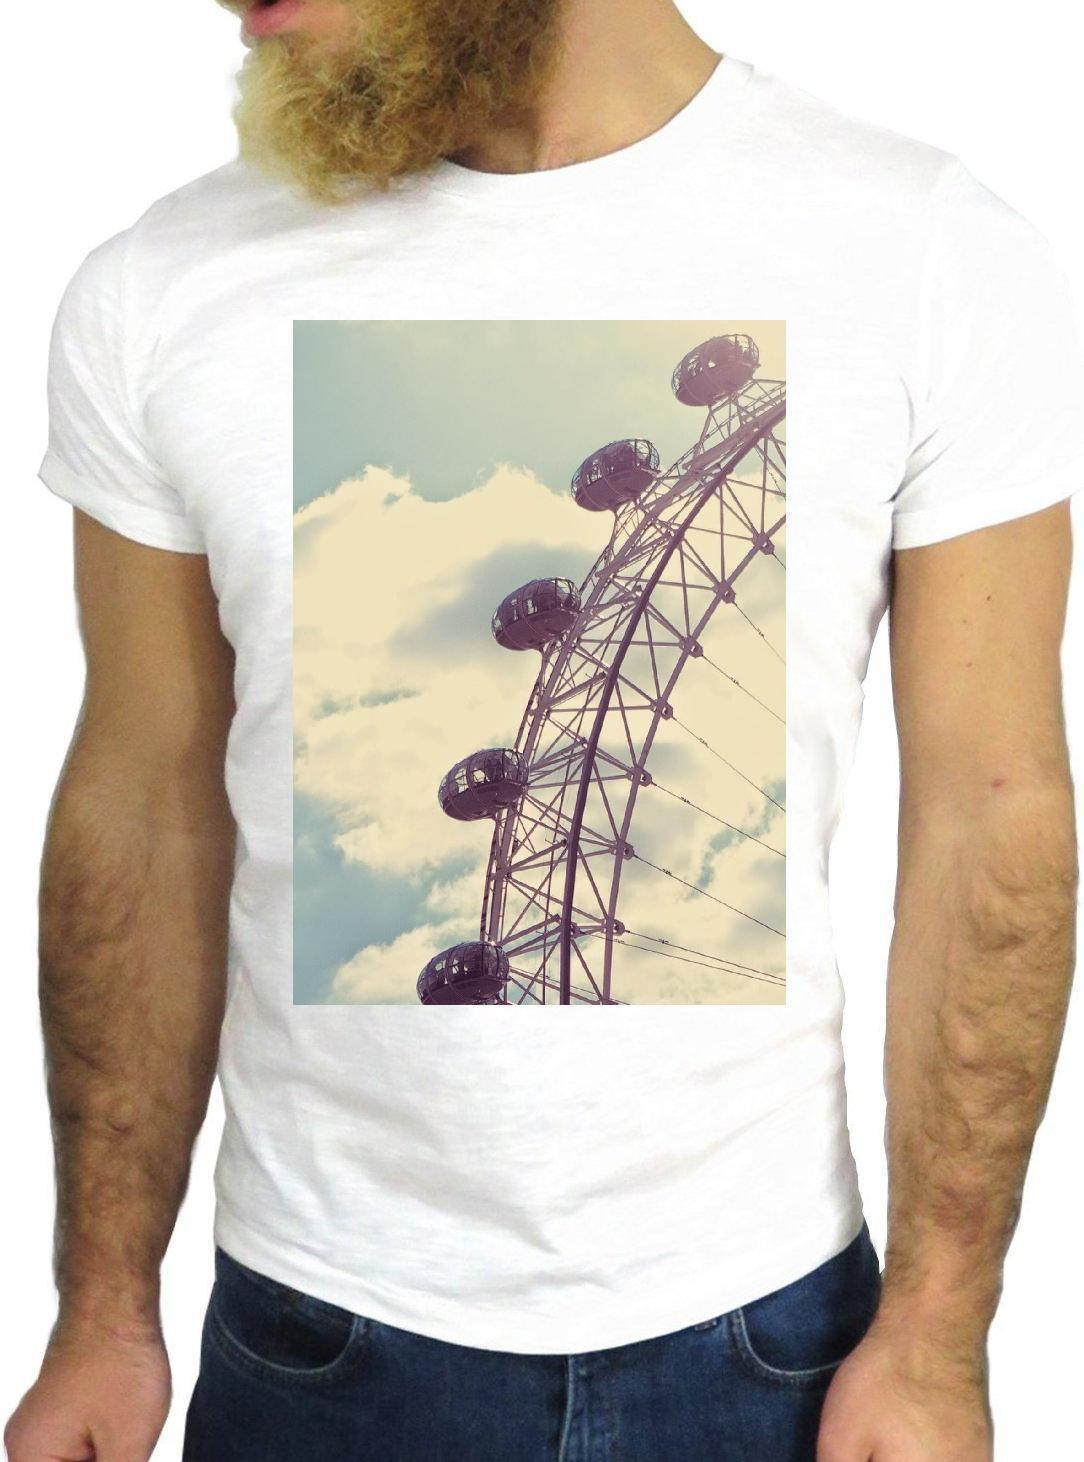 4e9e2a6f530c25 T SHIRT JODE Z1908 FERRIS WHEEL LONDON VINTAGE SKYLINE FUN COOL FASHION  NICE GGG Shirts Design Online T Shirts From Lovemeprintes